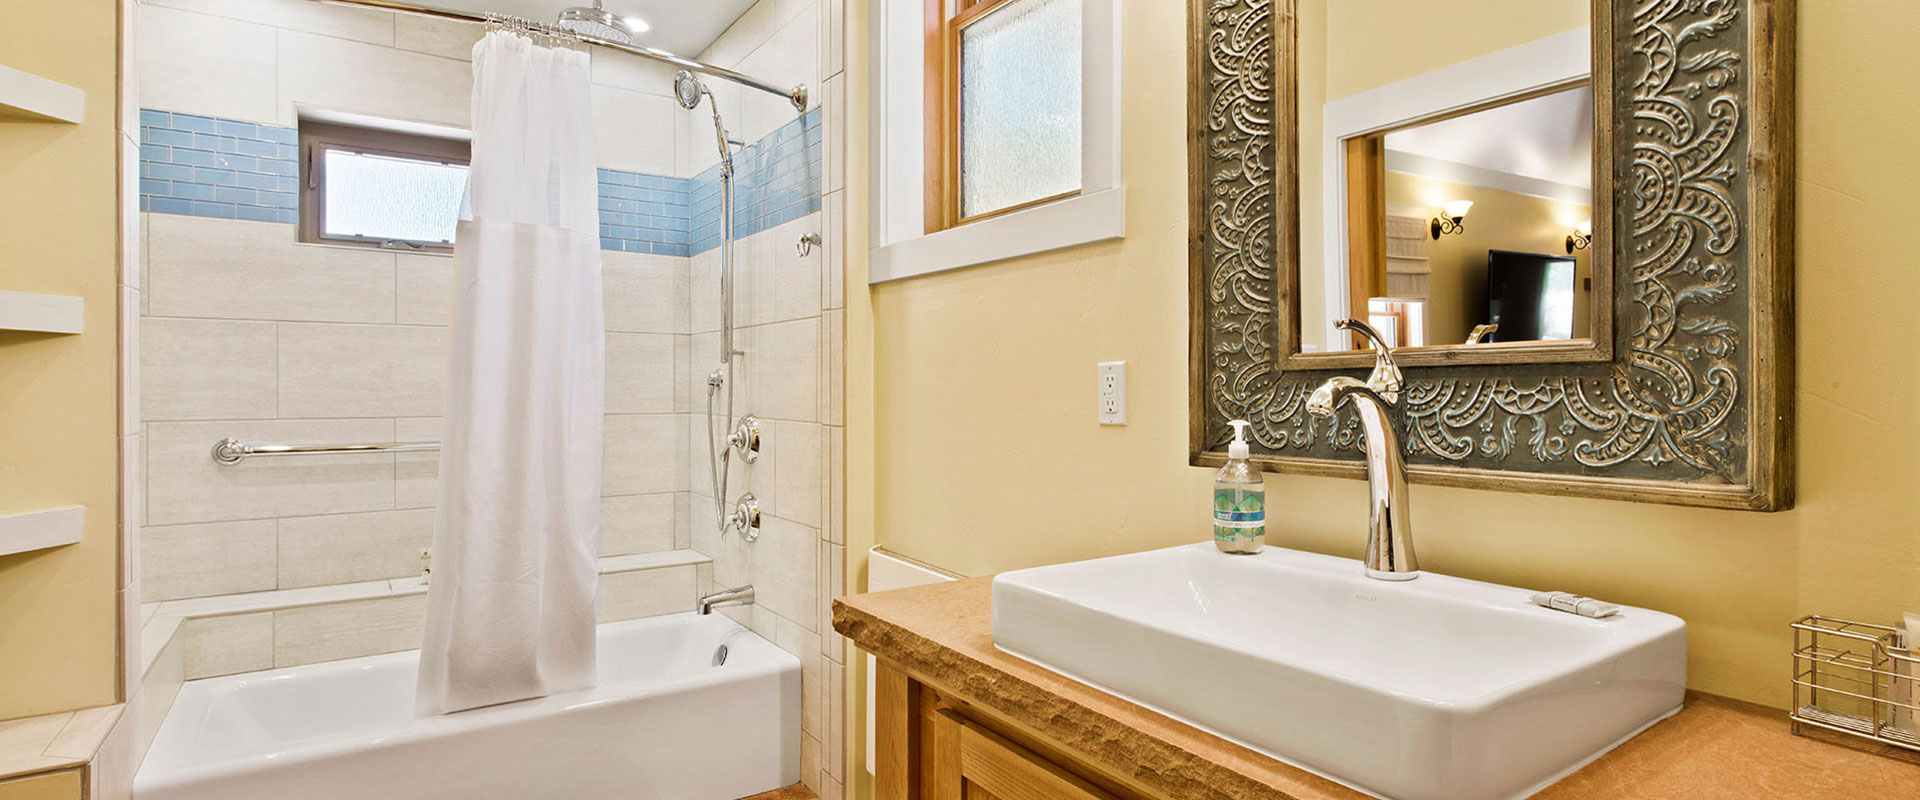 Long wood slats make up the flooring of the balcony of Unit #21 at Moab Springs Ranch with corrugated metal fencing enclosing the area.